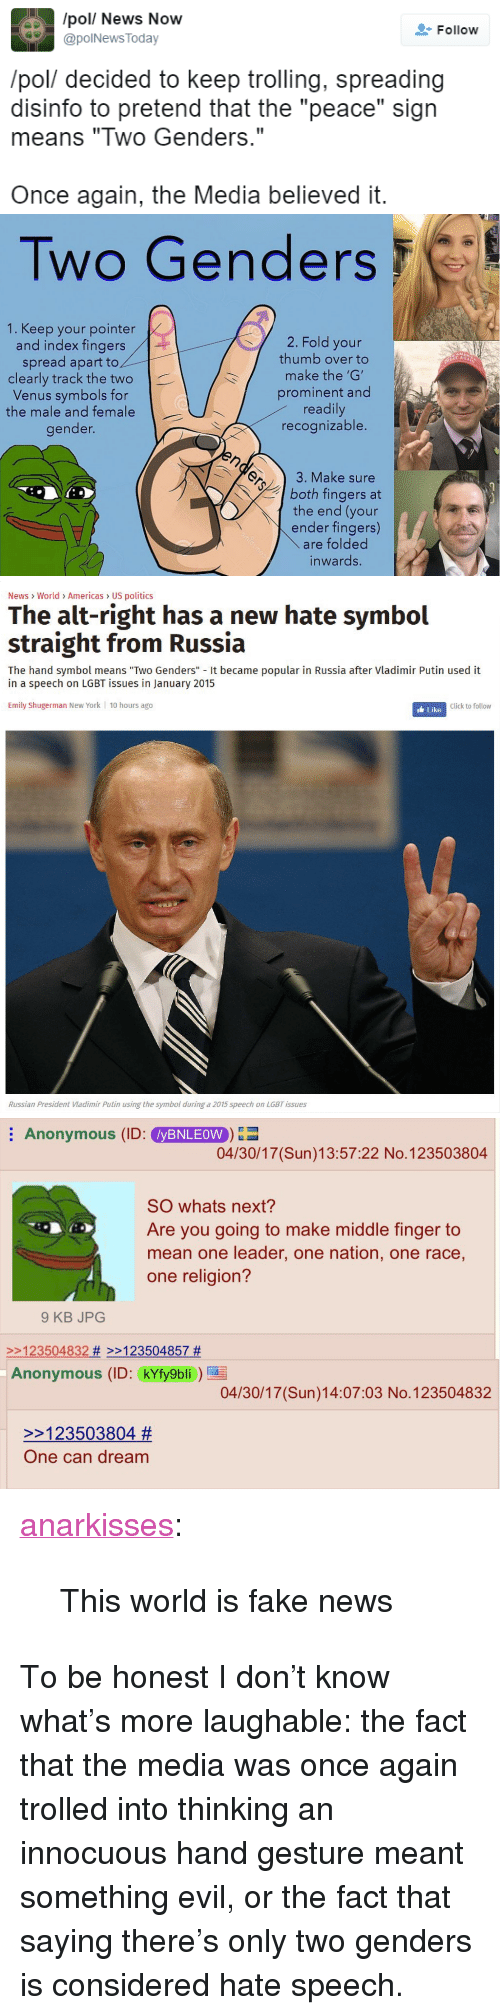 "Mean One: /pol/ News Now  @polNews Today  Follow  /pol/ decided to keep trolling, spreading  disinfo to pretend that the ""peace"" sign  means ""Two Genders.""  Once again, the Media believed it.   Two Genders  1. Keep your pointer  and index fingers  spread apart to  clearly track the two  Venus symbols for  the male and female  gender.  2. Fold your  thumb over to  make the 'G'  prominent and  readily  recognizable.  T AGA  3. Make sure  both fingers at  the end (your  ender fingers)  are folded  inwards.   News World> Americas US politics  The alt-right has a new hate symbol  straight from Russia  The hand symbol means ""Two Genders"" It became popular in Russia after Vladimir Putin used it  in a speech on LGBT issues in January 2015  Emily Shugerman New York 10 hours ago  Click to follow  Russian President Viadimir Putin using the symbol during a 2015 speech on LGBT issues   Anonymous (ID: yBNLEOW  04/30/17 (Sun)13:57:22 No.123503804  SO whats next?  Are you going to make middle finger to  mean one leader, one nation, one race,  one religion?  9 KB JPOG  2123504832 # >>123504857 #  Anonymous (ID: kYfy9bli  04/30/17 (Sun)14:07:03 No.123504832  >>123503804 #  One can dream <p><a href=""https://anarkisses.tumblr.com/post/160191763797/this-world-is-fake-news"" class=""tumblr_blog"">anarkisses</a>:</p>  <blockquote><p>This world is fake news</p></blockquote>  <p>To be honest I don&rsquo;t know what&rsquo;s more laughable: the fact that the media was once again trolled into thinking an innocuous hand gesture meant something evil, or the fact that saying there&rsquo;s only two genders is considered hate speech.</p>"